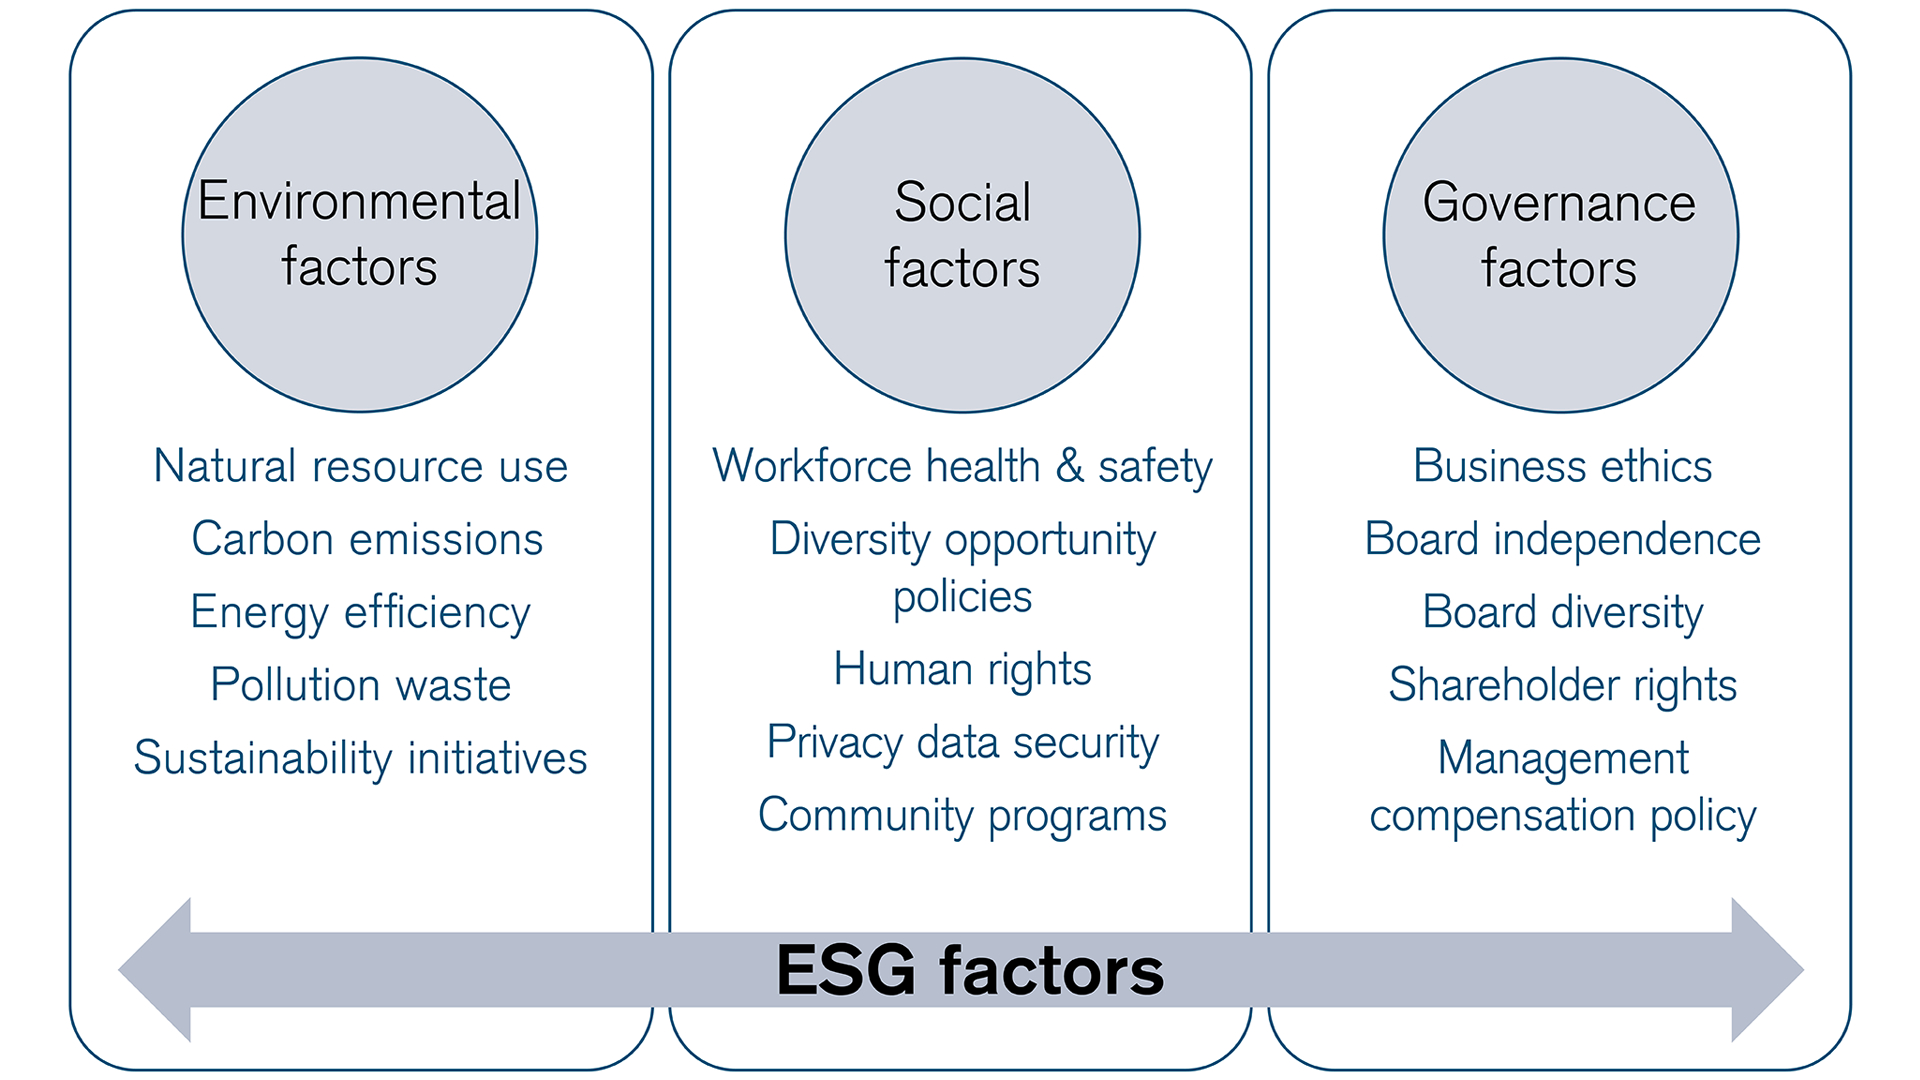 sustainable-investing-according-to-esg-factors